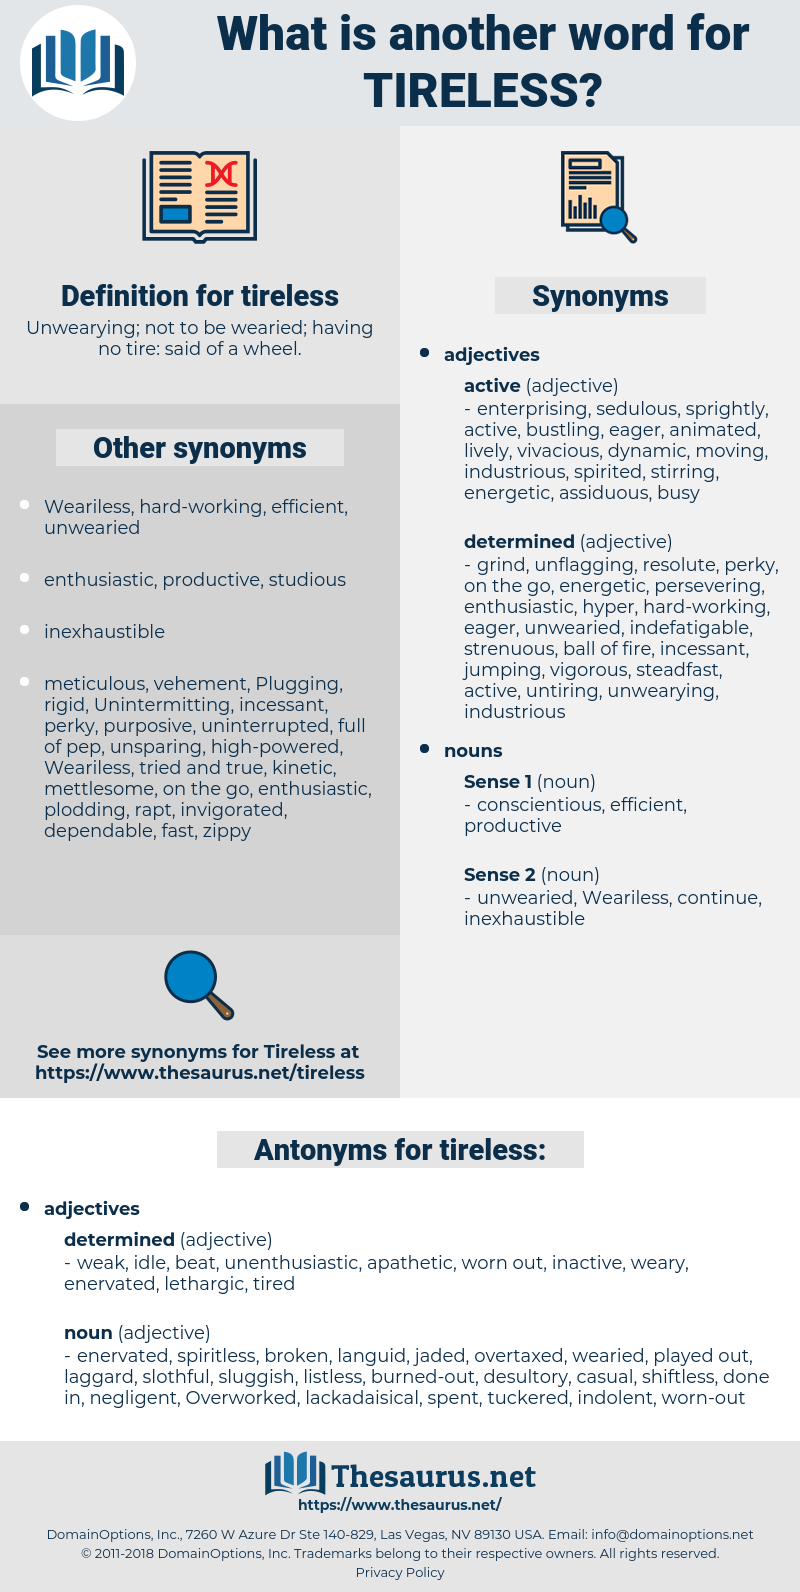 tireless, synonym tireless, another word for tireless, words like tireless, thesaurus tireless